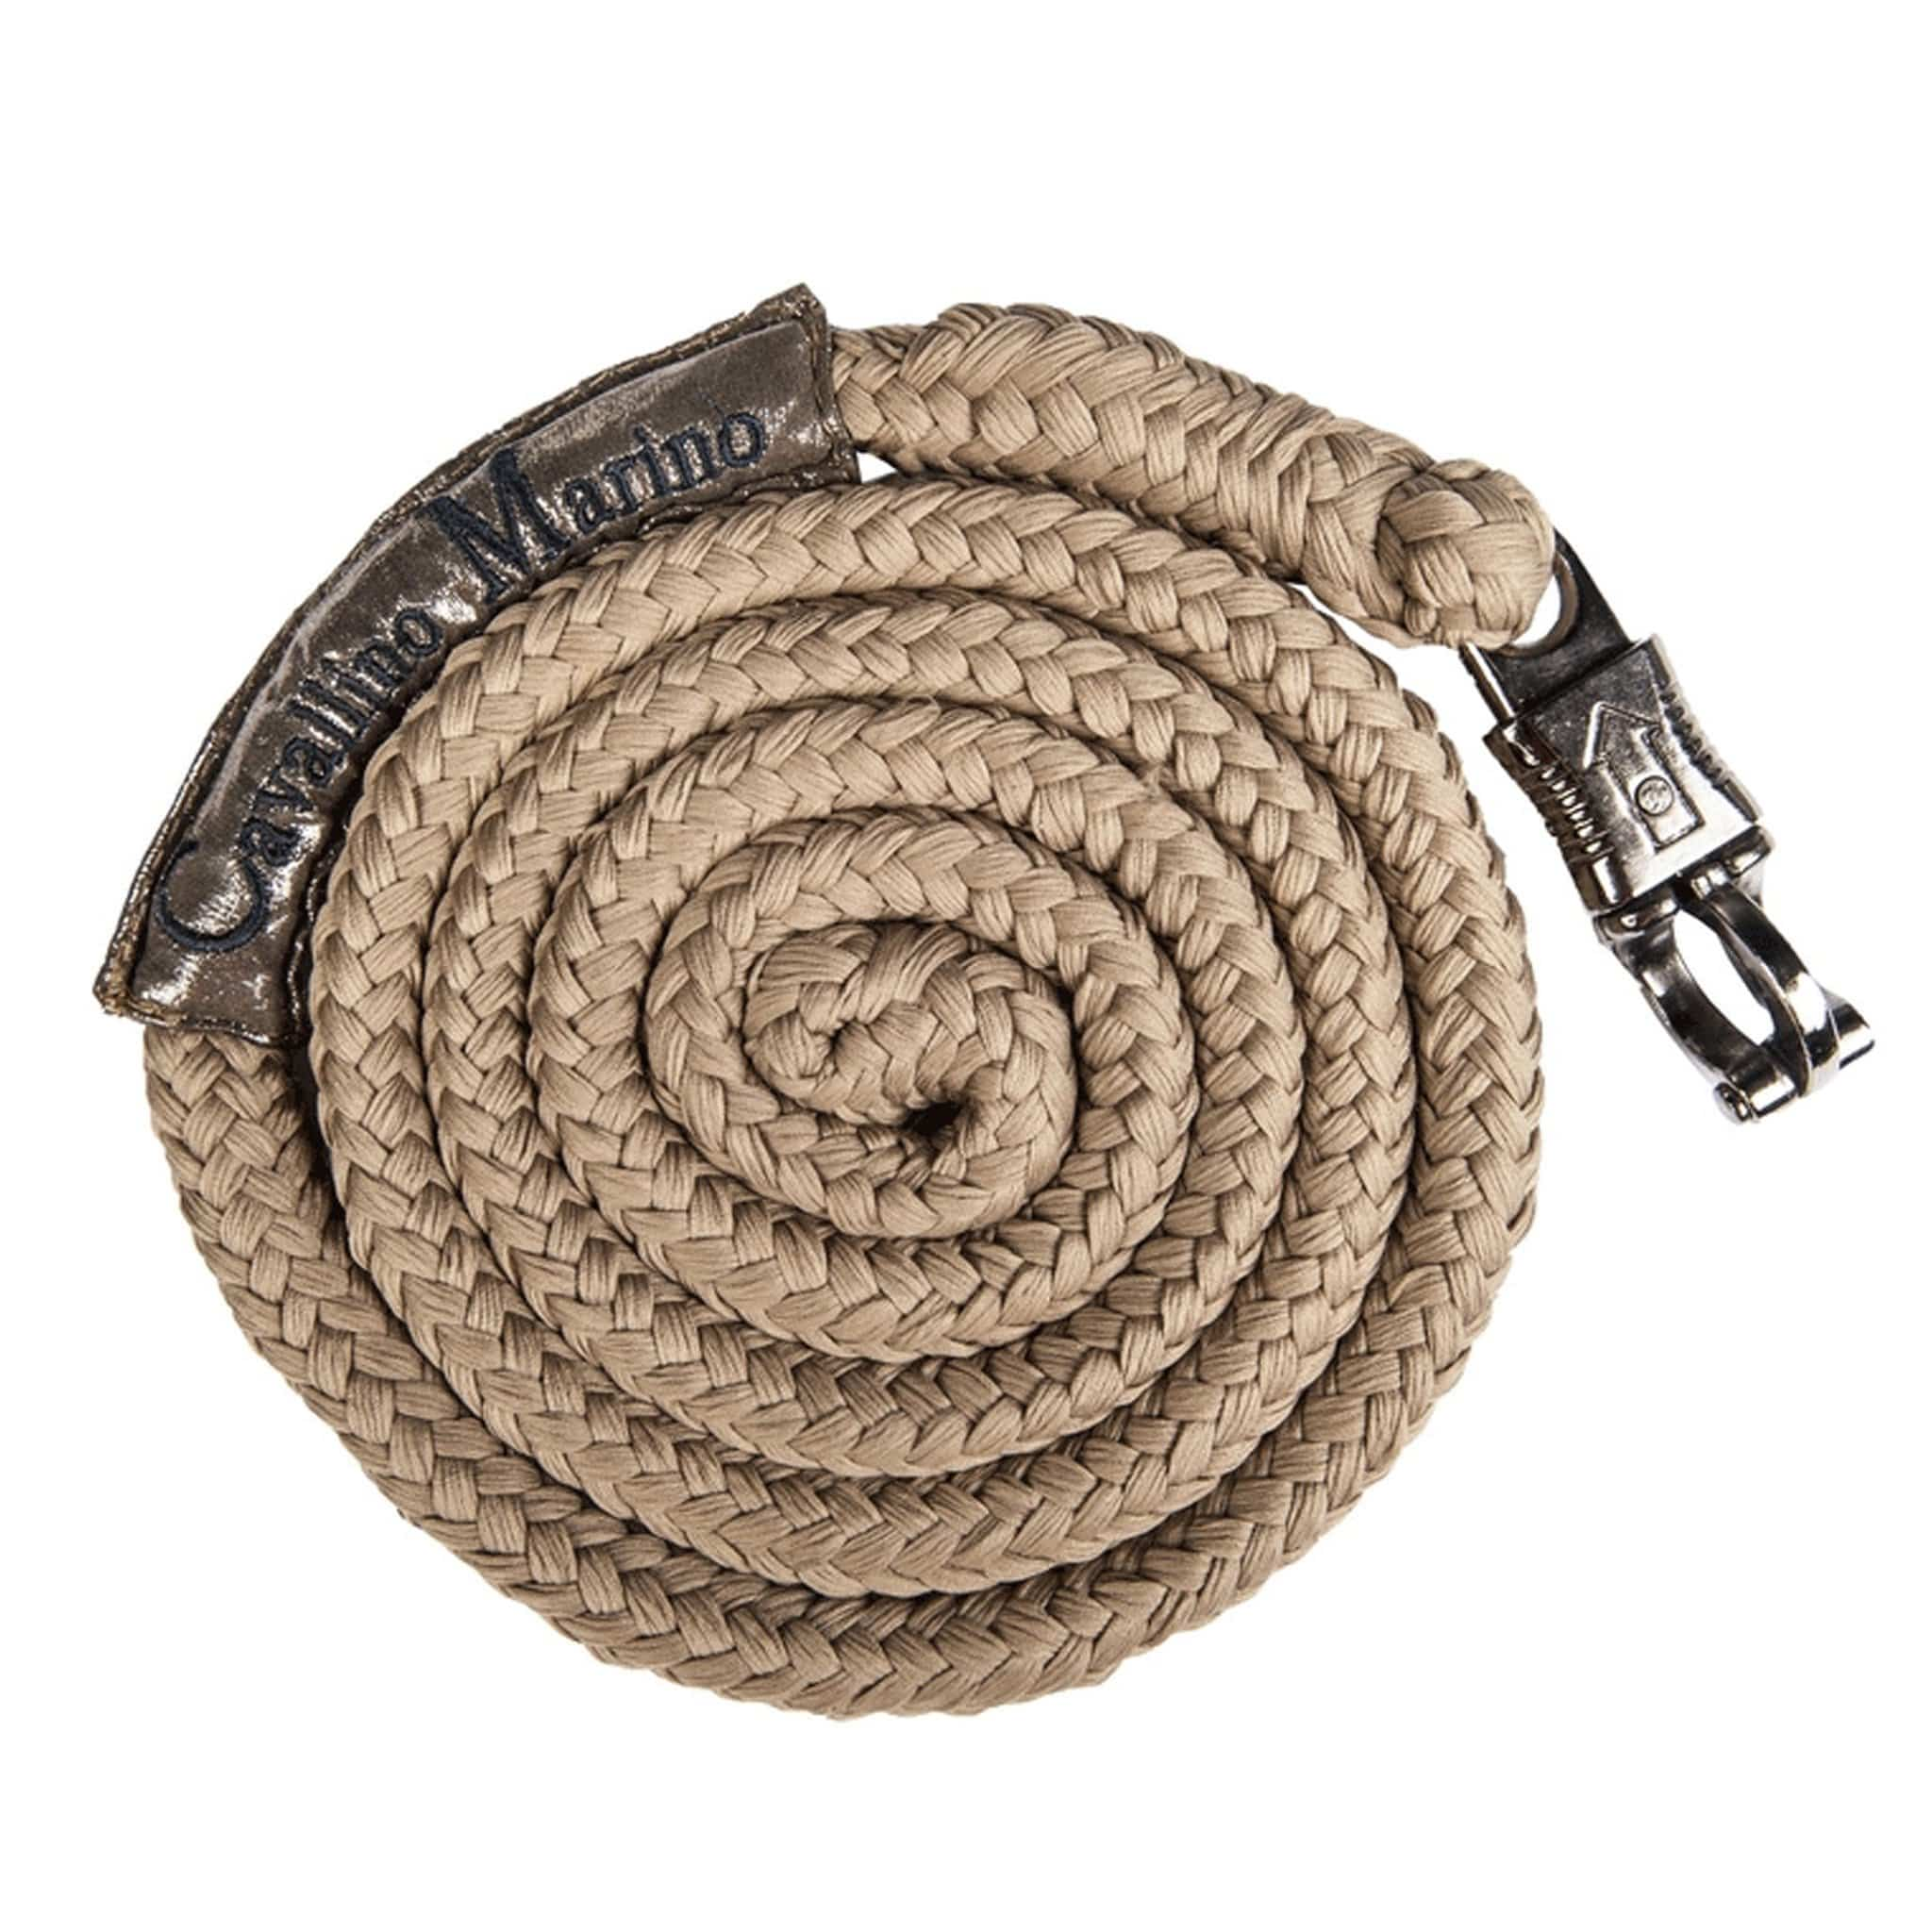 HKM Cavallino Marino Seaside Lead Rope 5458 Sand